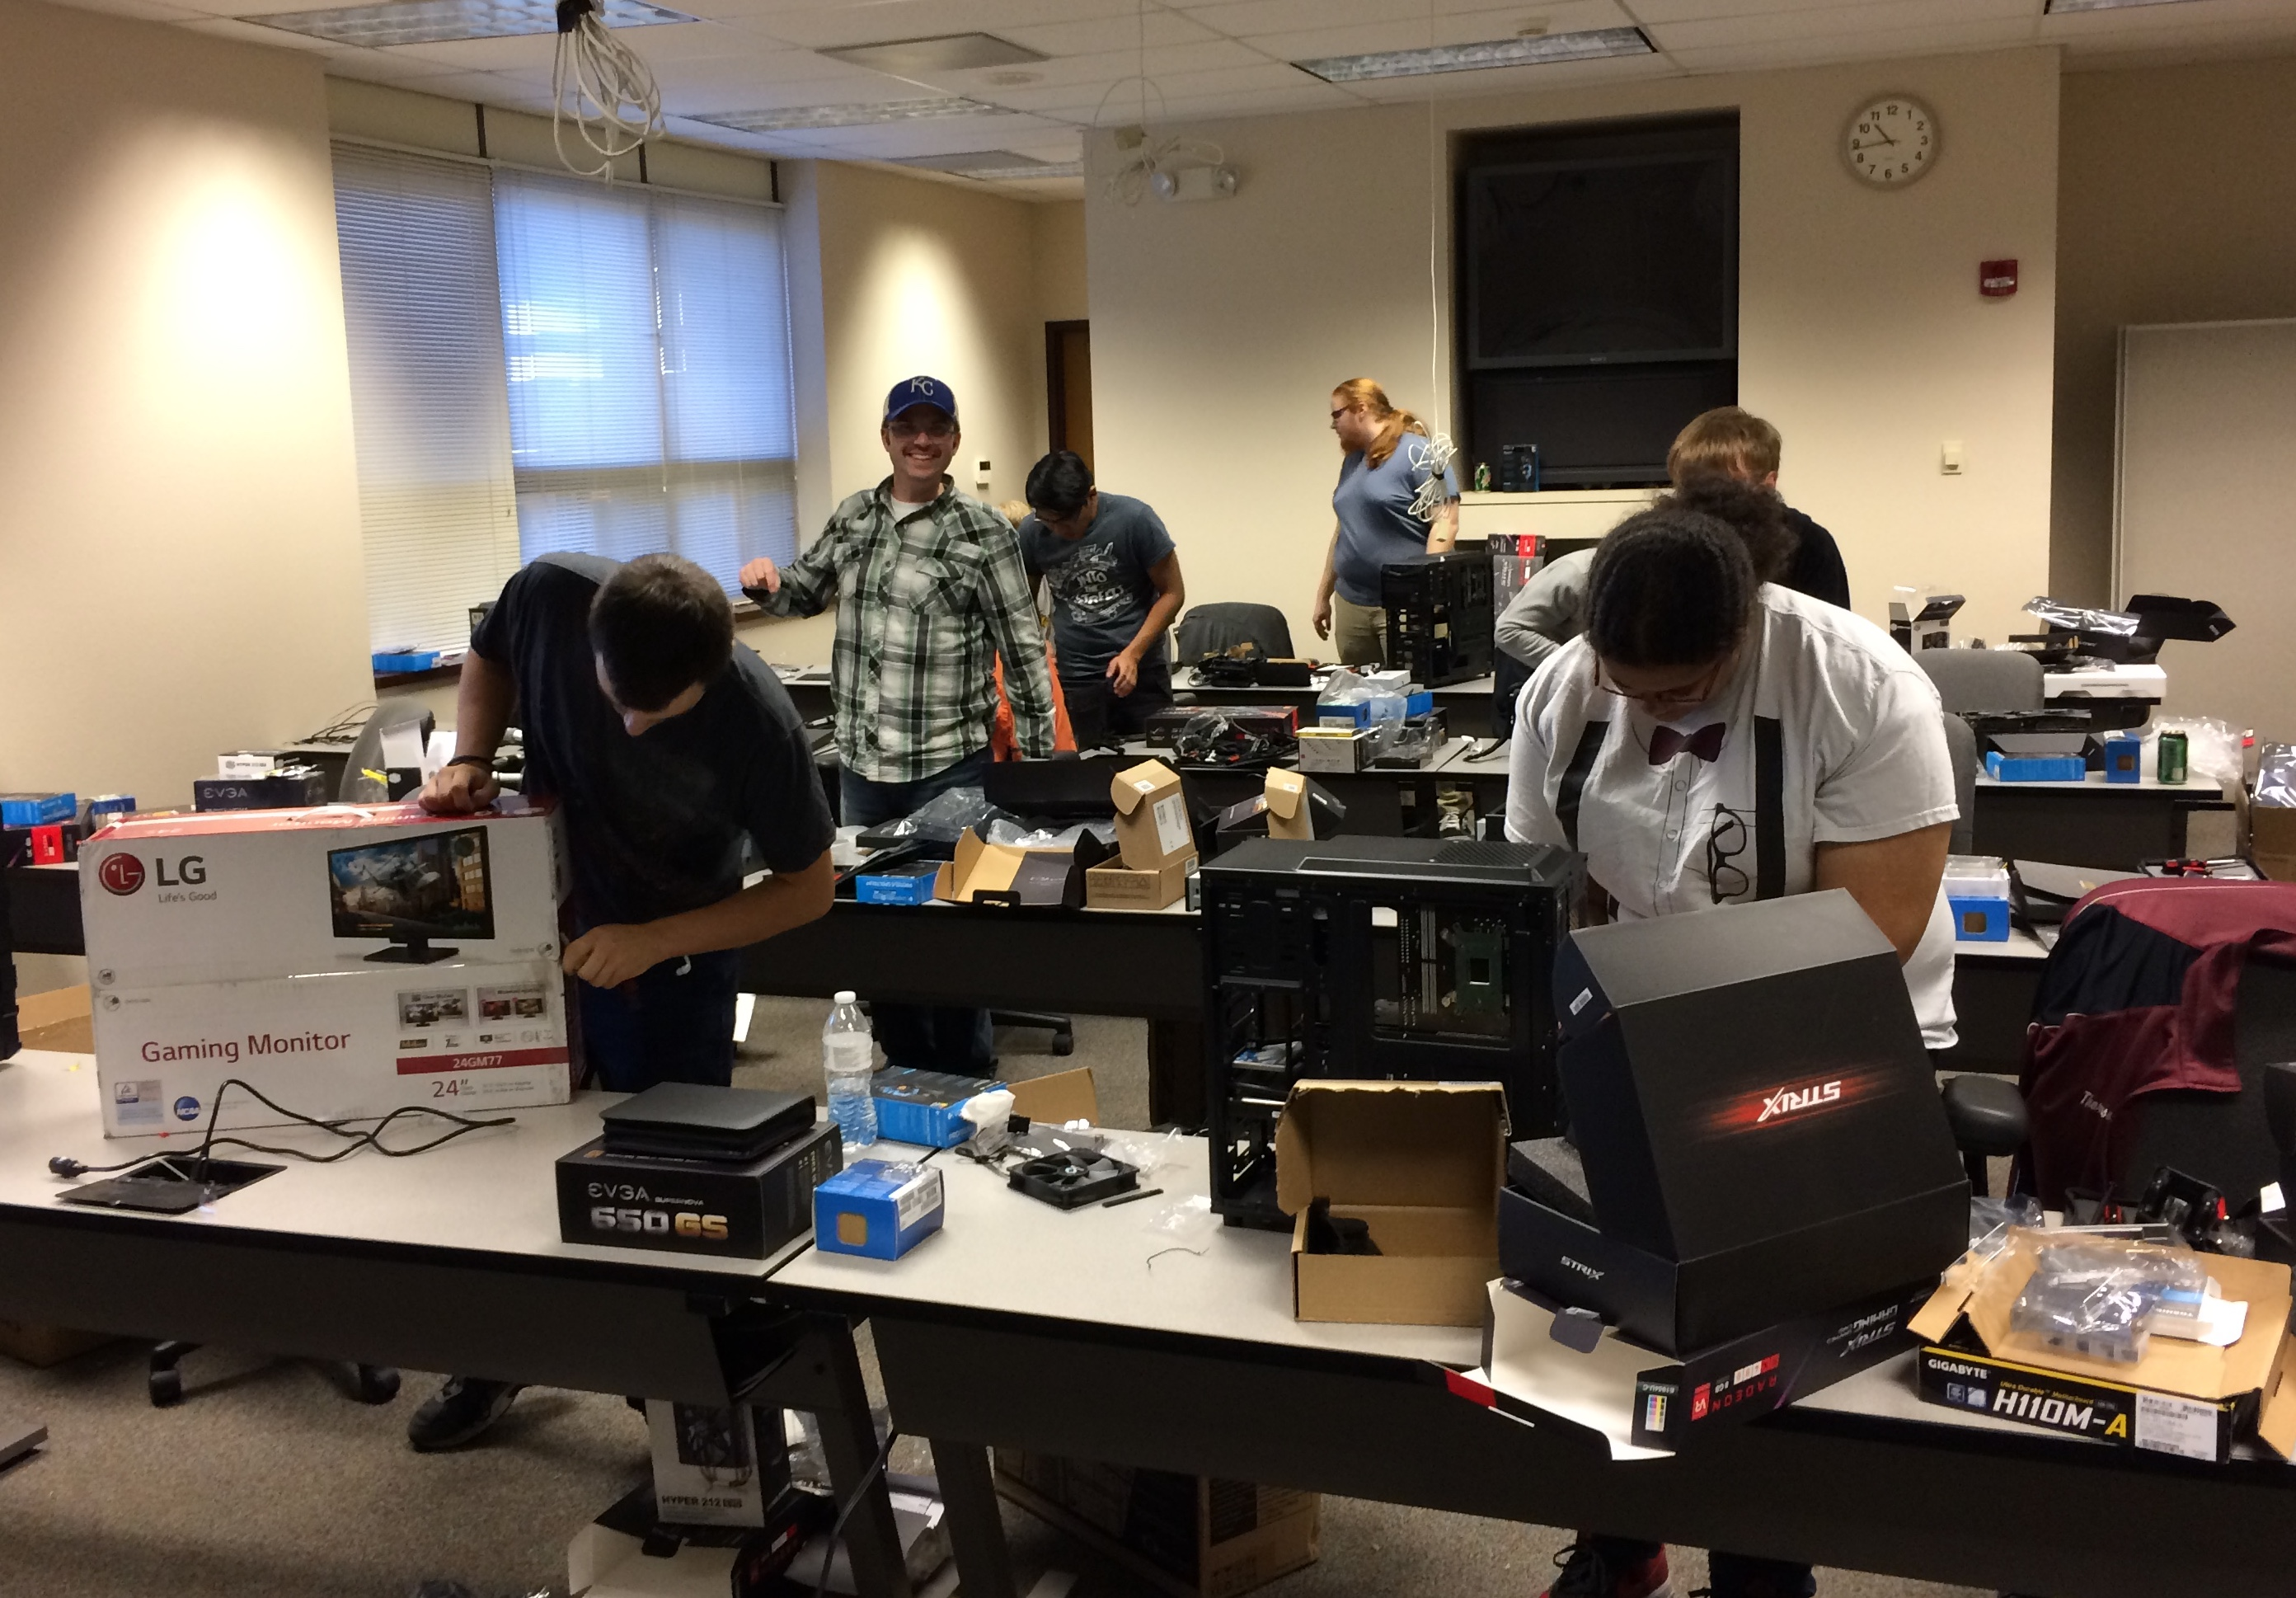 Esports competitors at Morningside College in Iowa helped assemble their gaming computers.